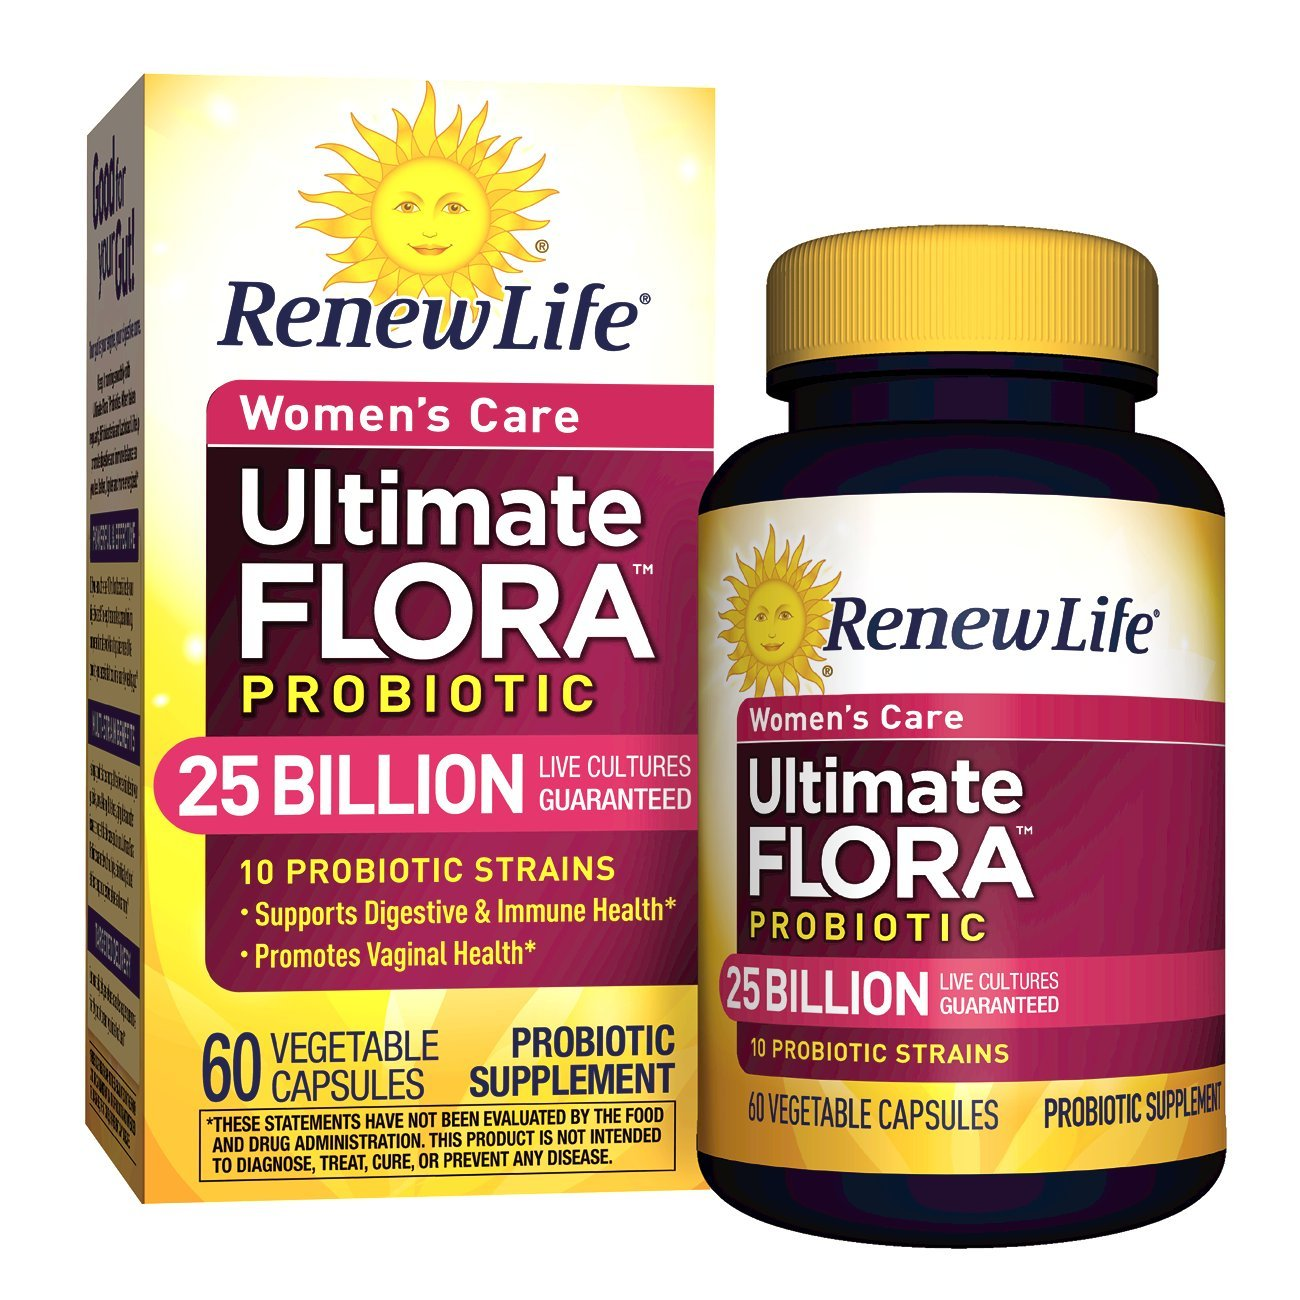 Renew Life Women's Probiotic - Ultimate Flora Probiotic Women's Care, Shelf Stable Probiotic Supplement - 25 Billion - 60 Vegetable Capsules